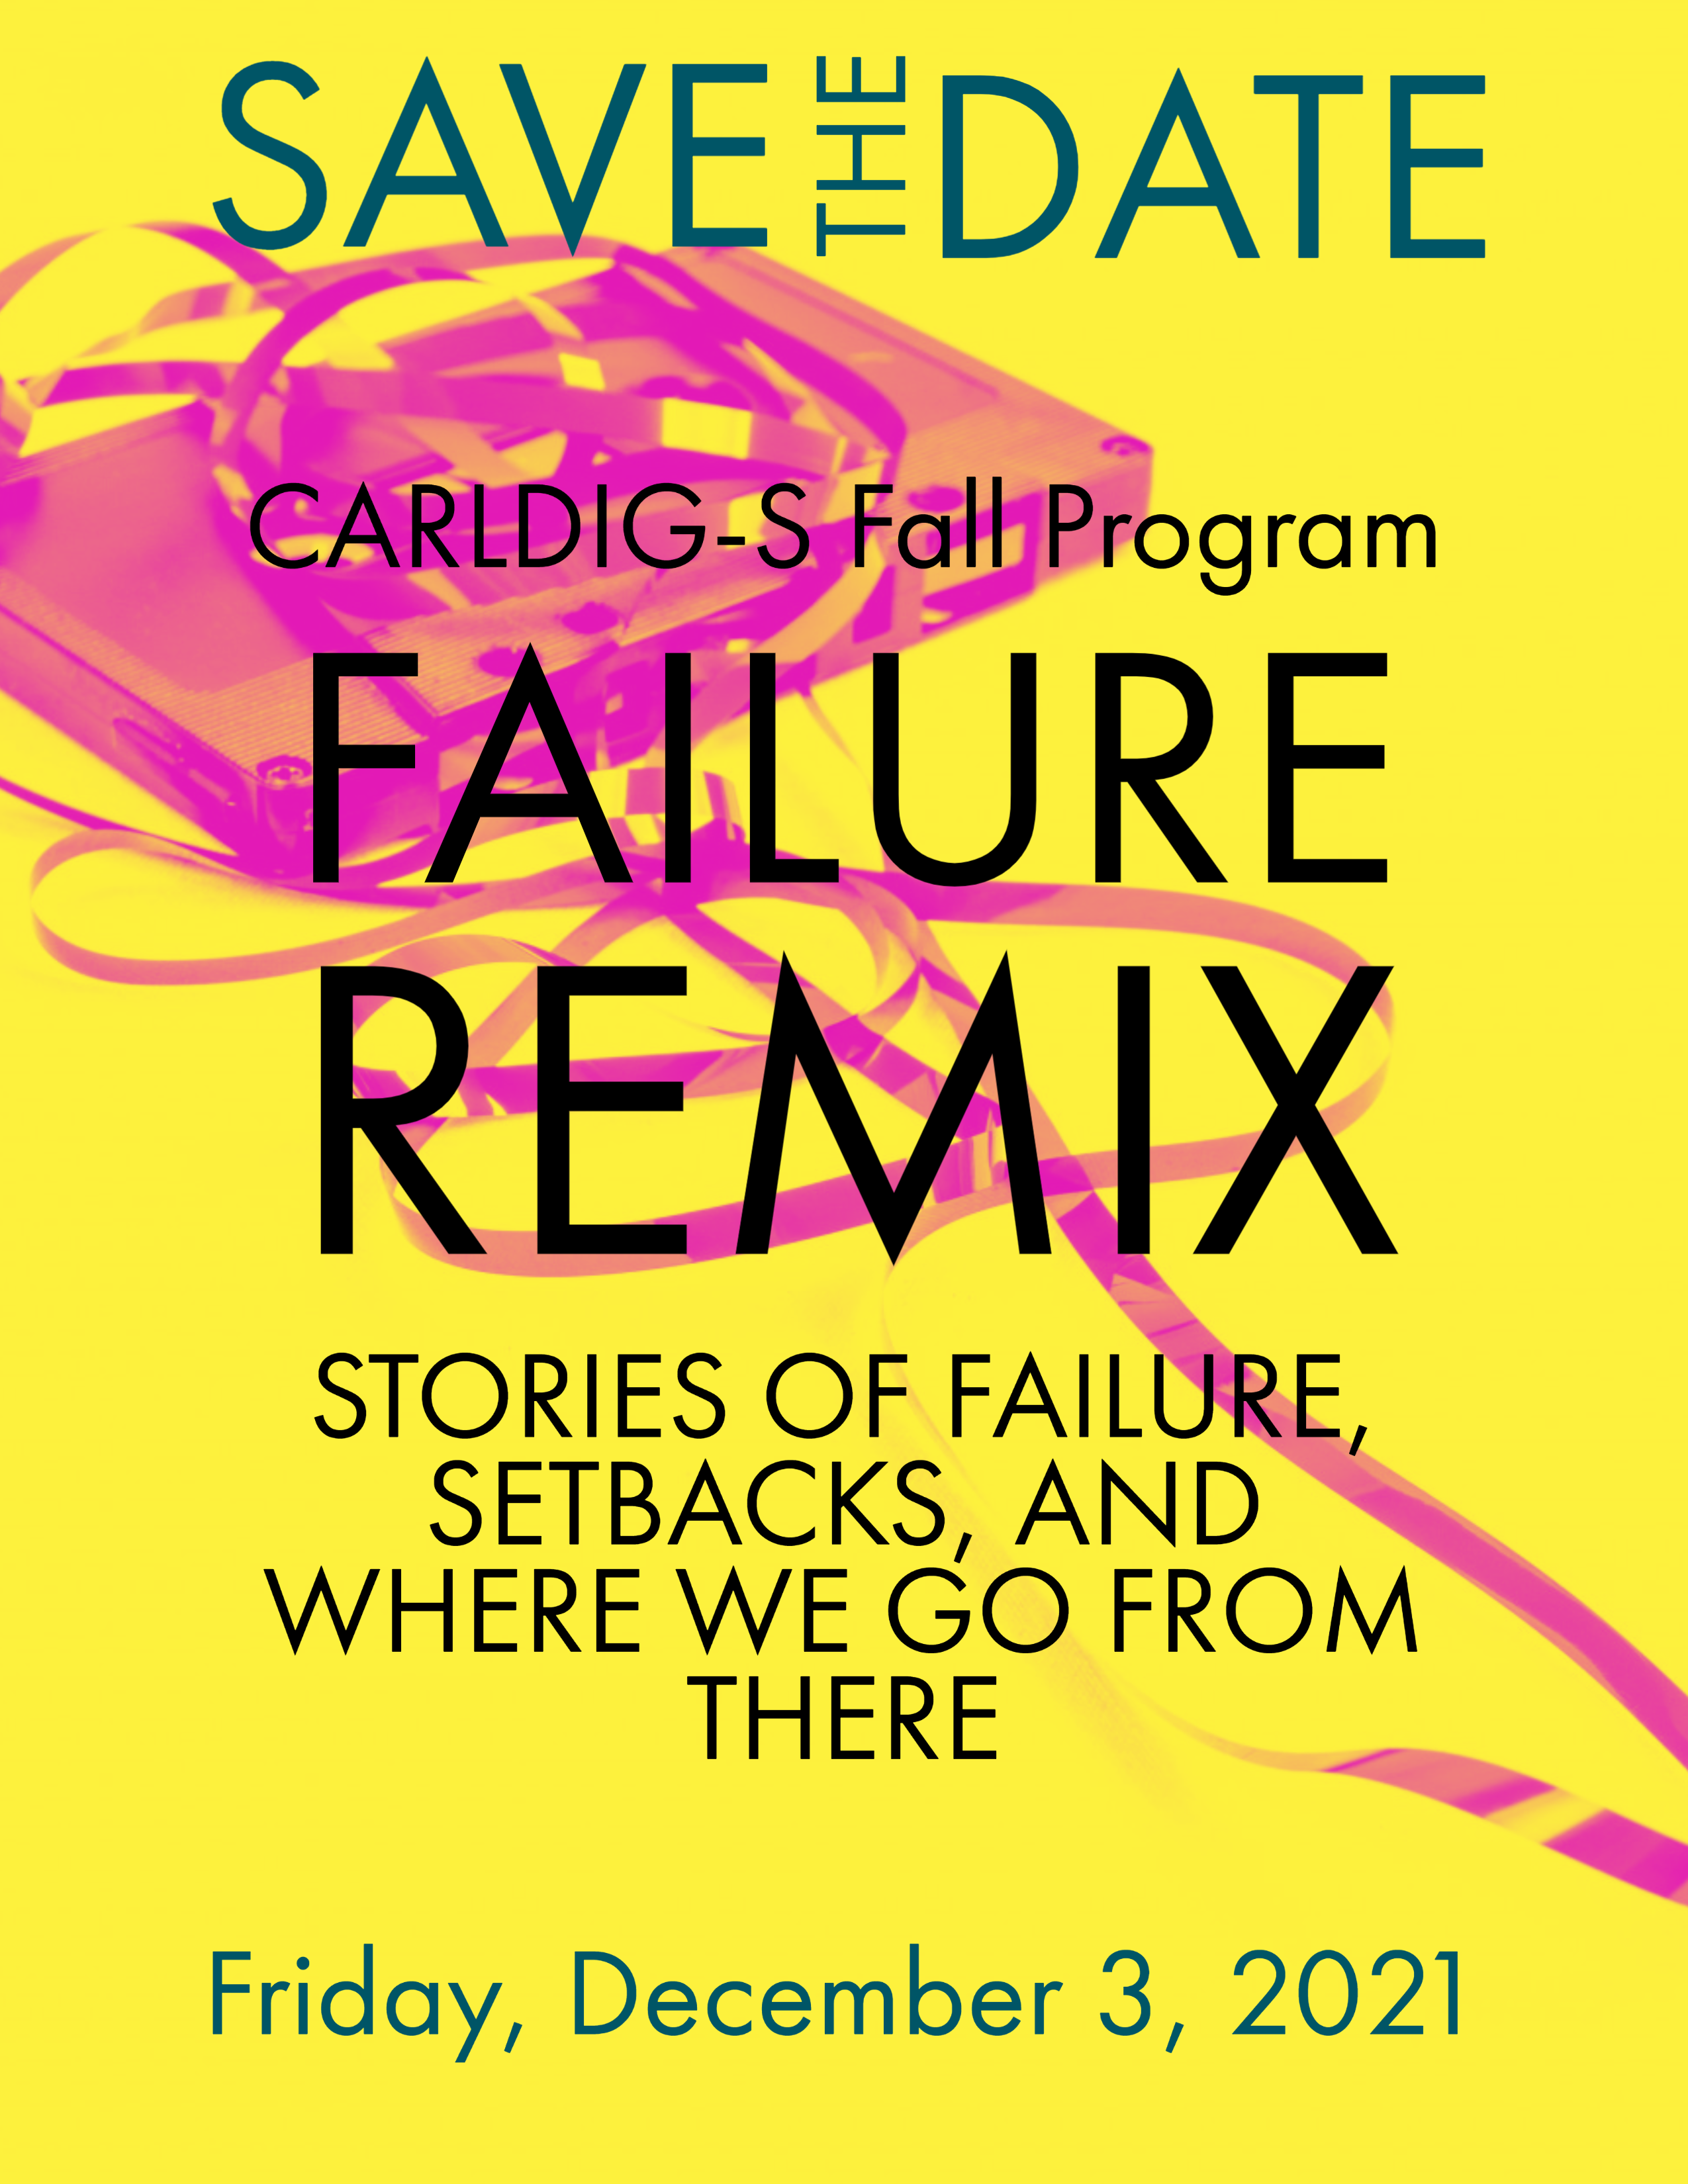 """Save the Date: CARLDIG-S Fall Program: """"Failure Remix: Stories of Failure, Setbacks, and Where We Go From There"""" - Friday, December 3, 2021"""